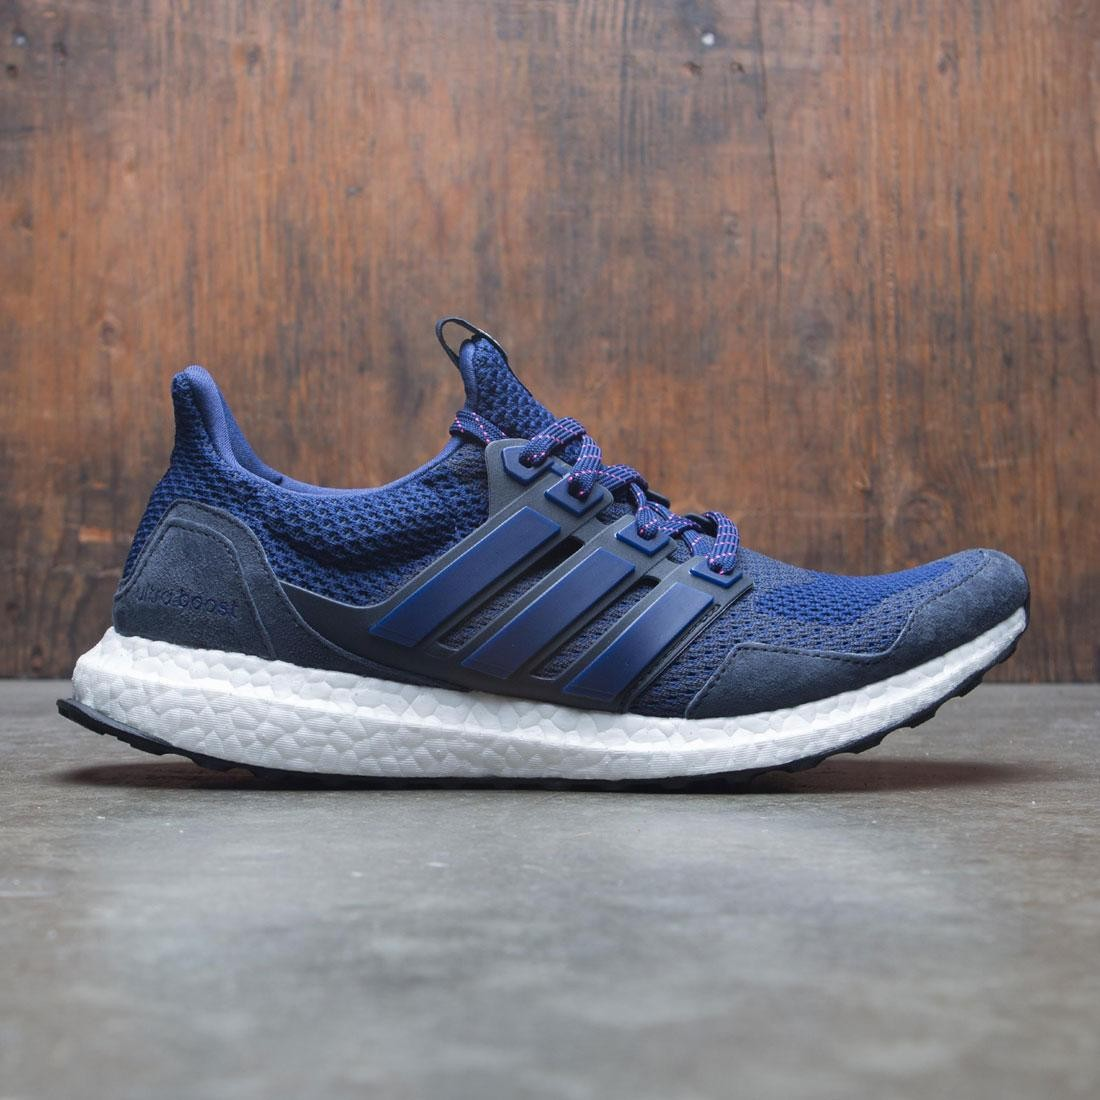 Adidas Consortium x Kinfolk Men UltraBOOST (navy night navy night indigo dark blue)